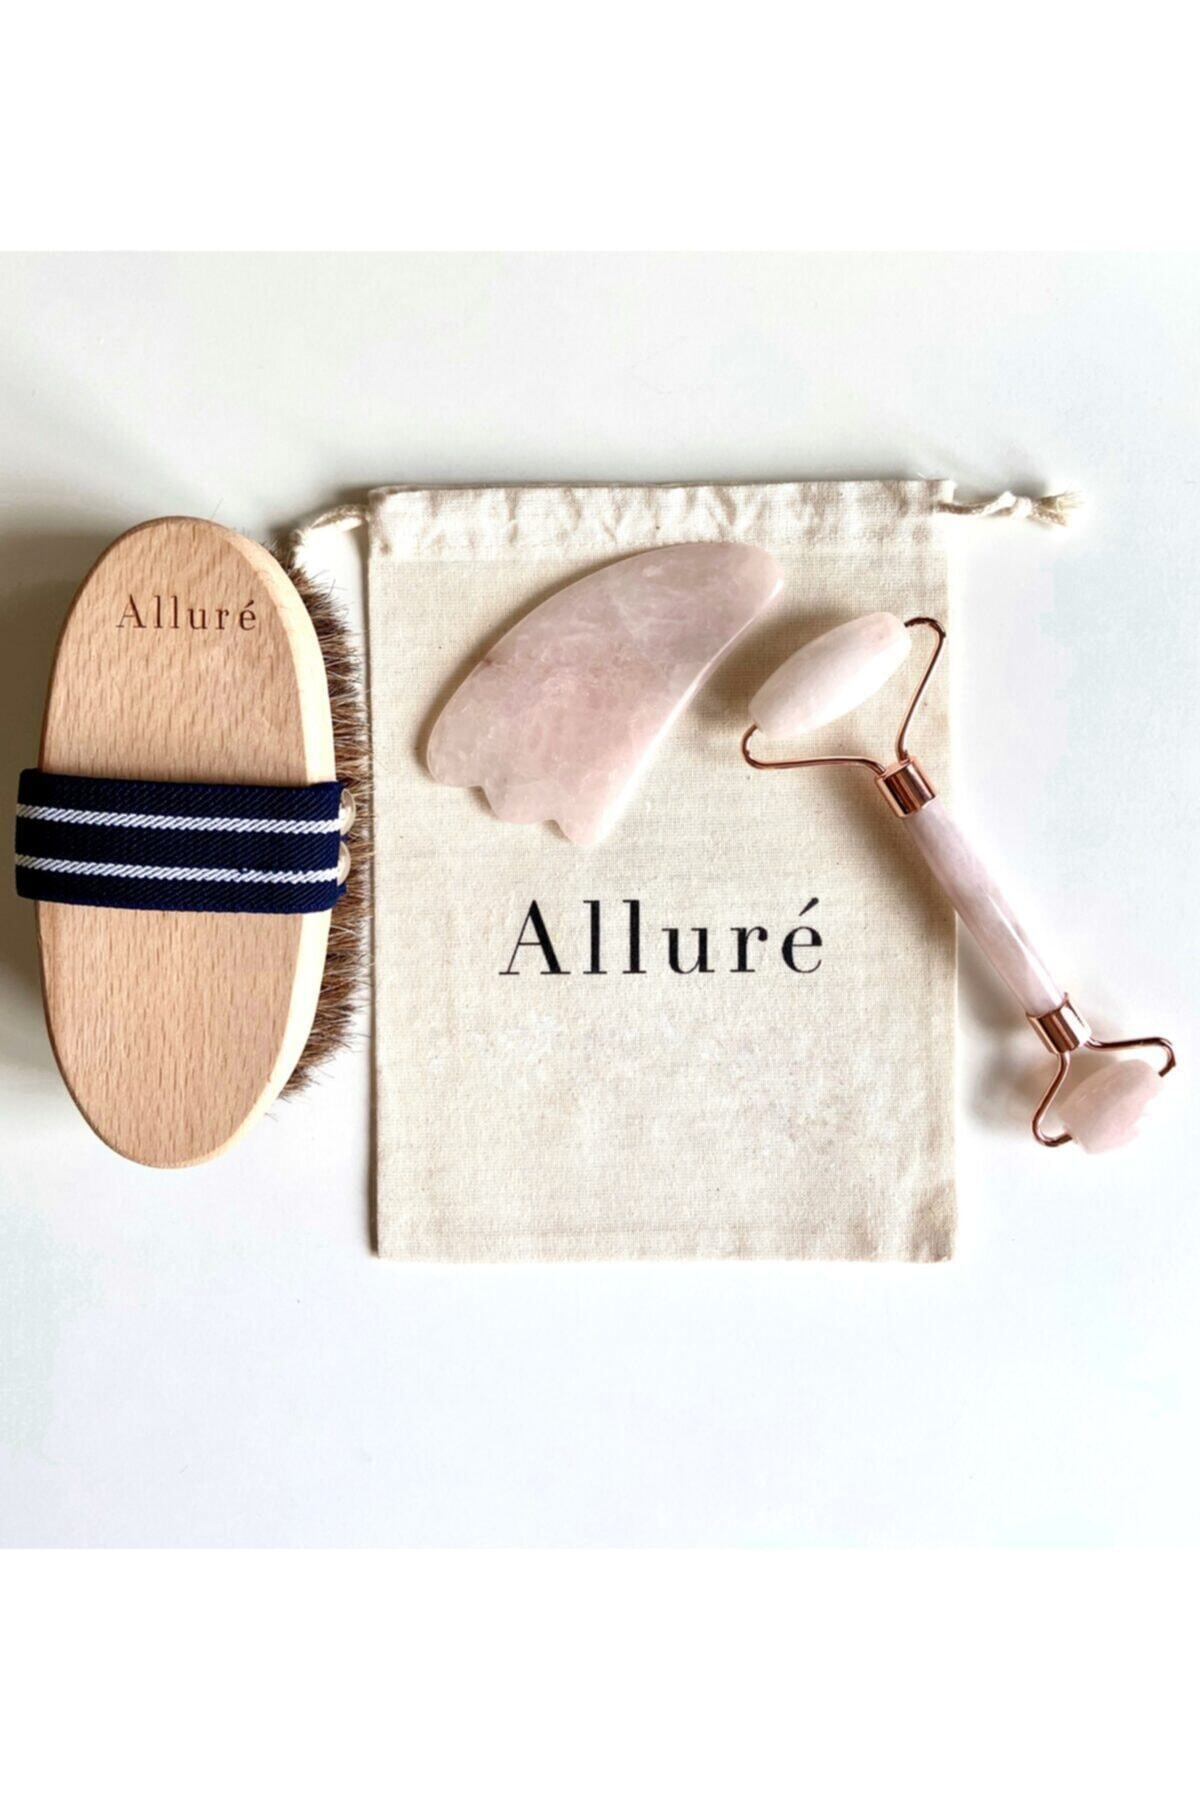 Allure Body Care Doğal At Kılı Fırça, Rose Quartz Face Roller & Gua Sha Bakım Seti 1